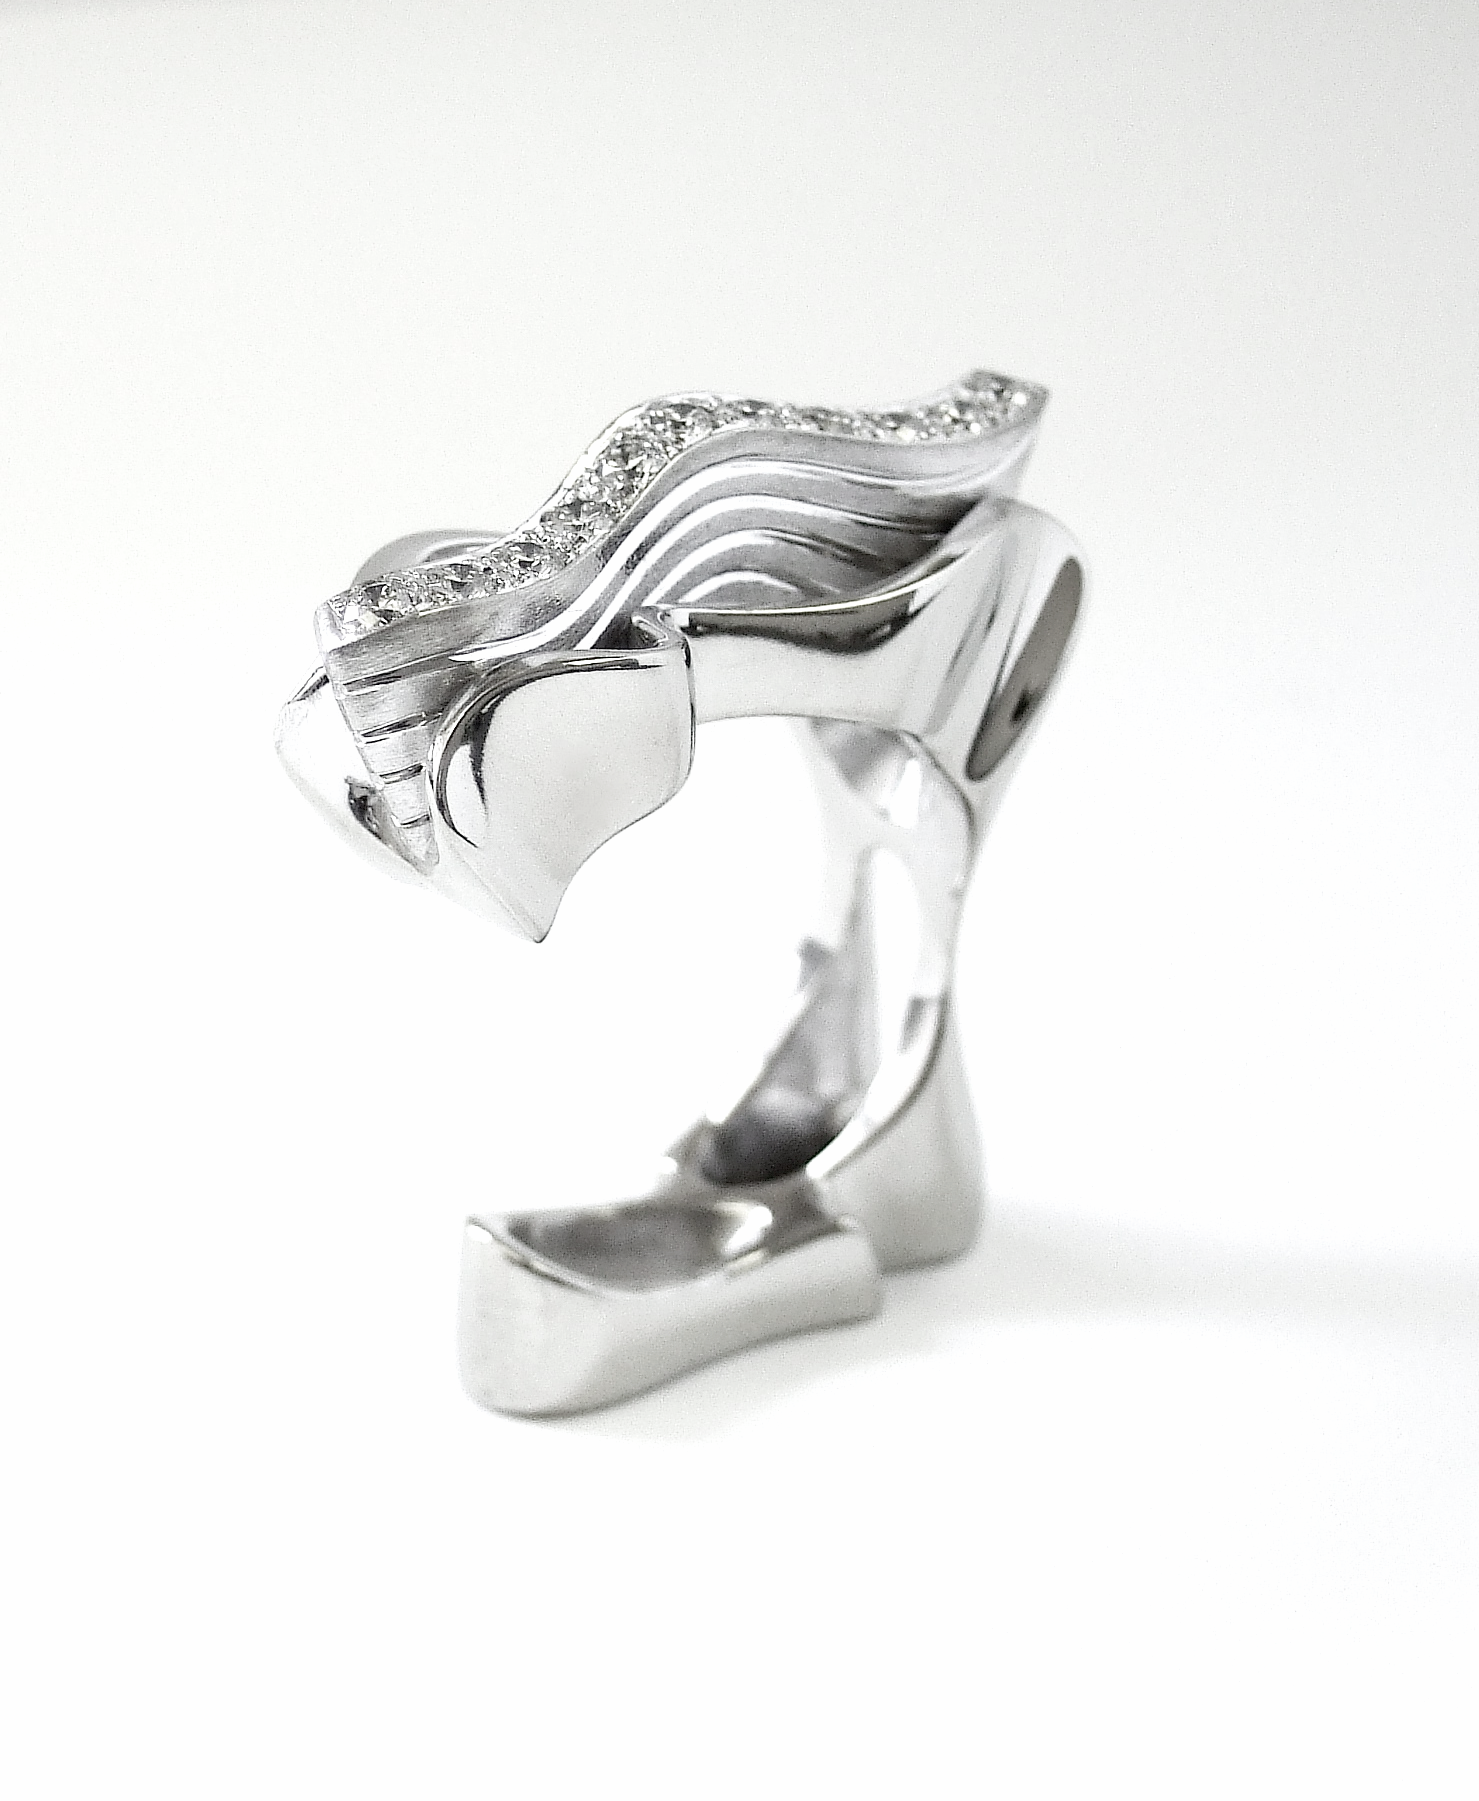 'Glacier' ring by Reena Ahluwalia for Mayur Davé (Gems) Inc. Canadian diamonds set in 18K white gold.